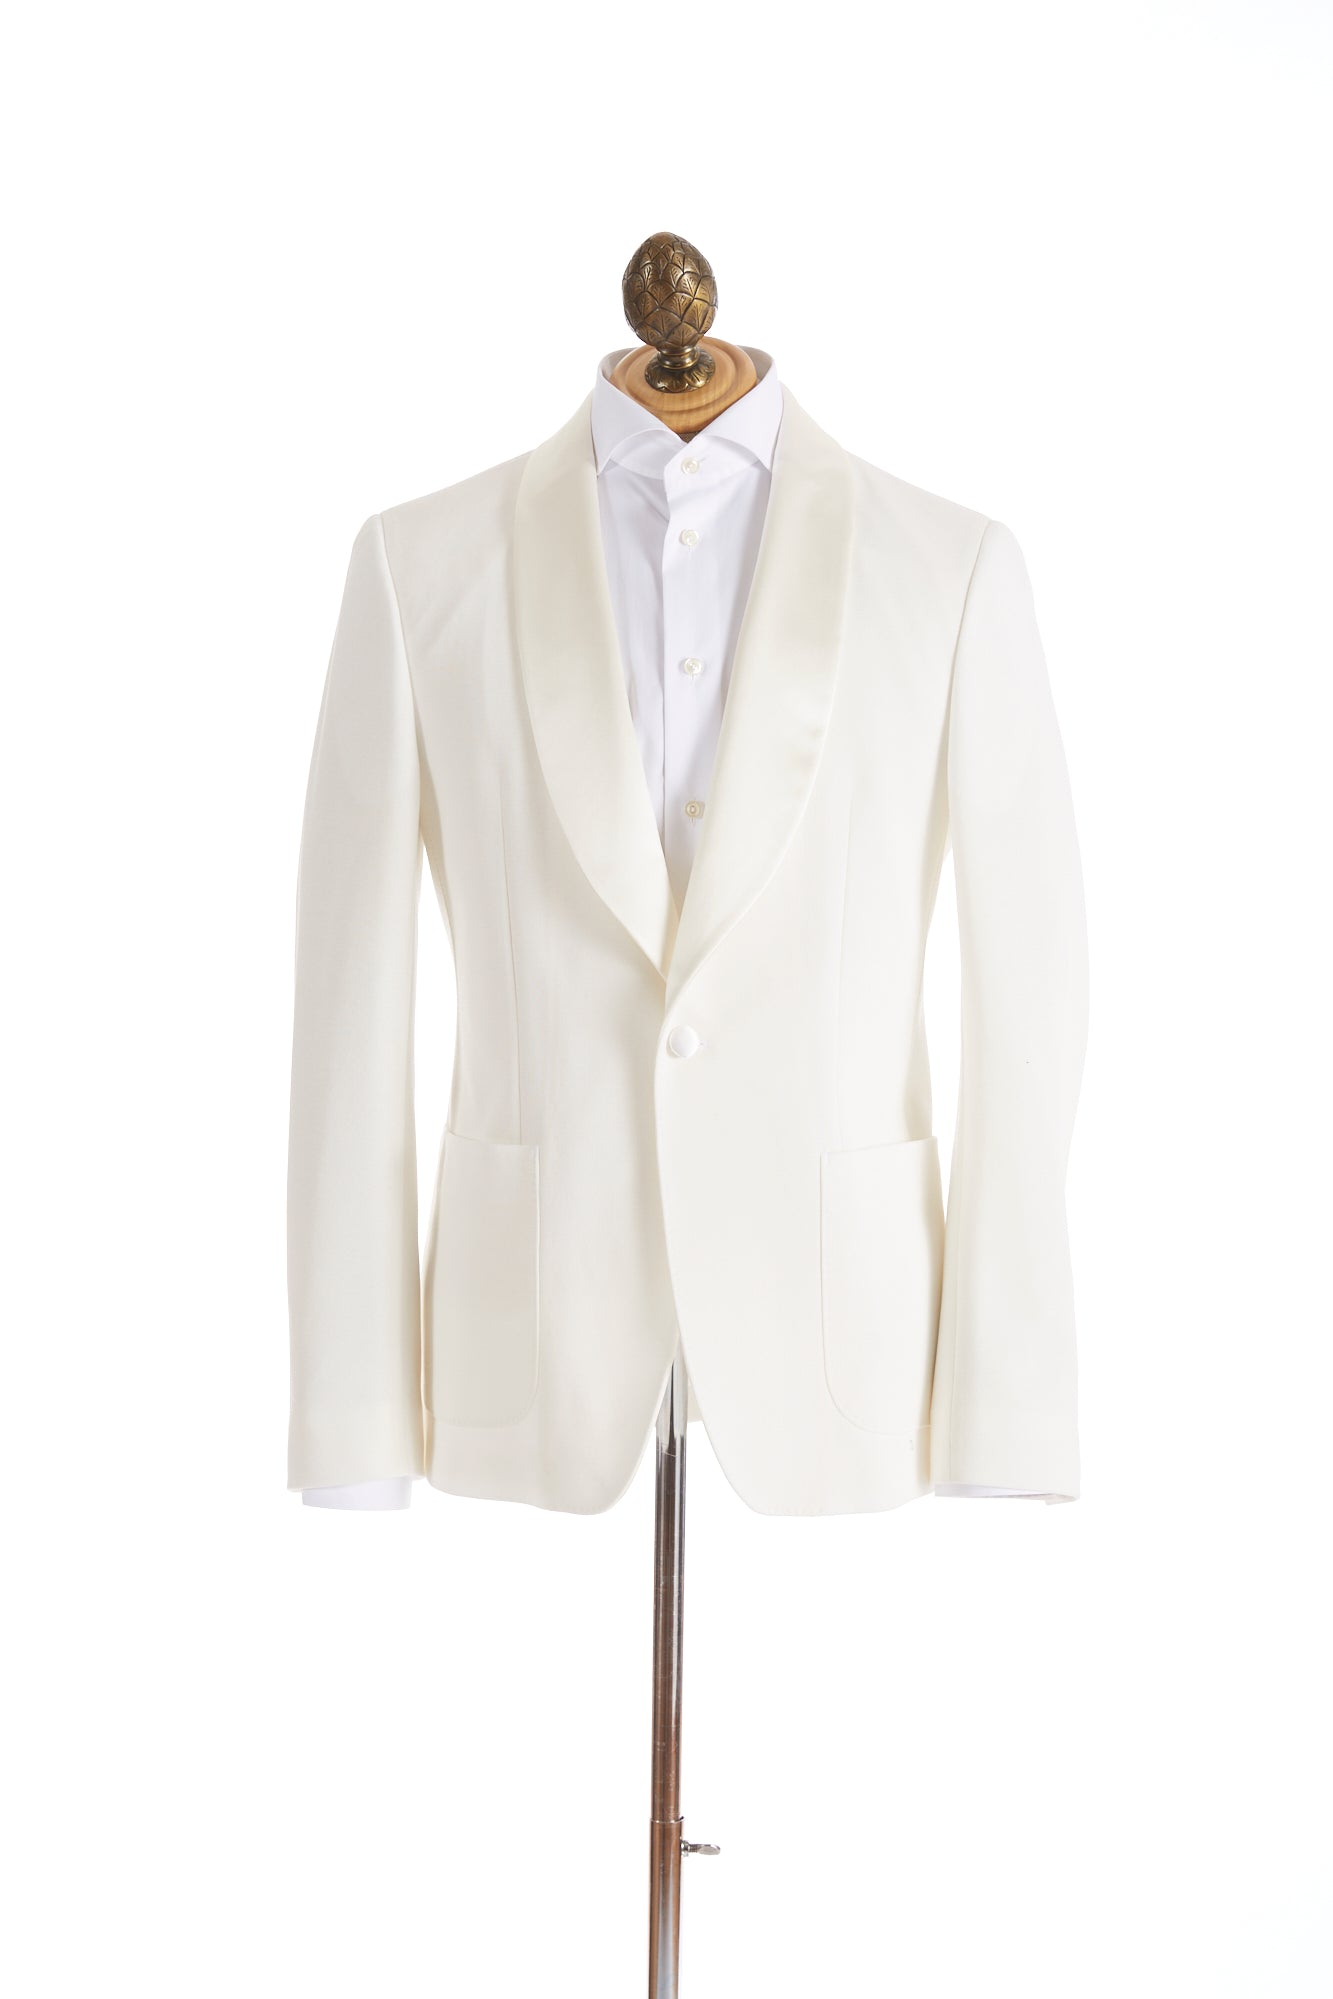 Z Zegna Cream Stretch Tuxedo Jacket